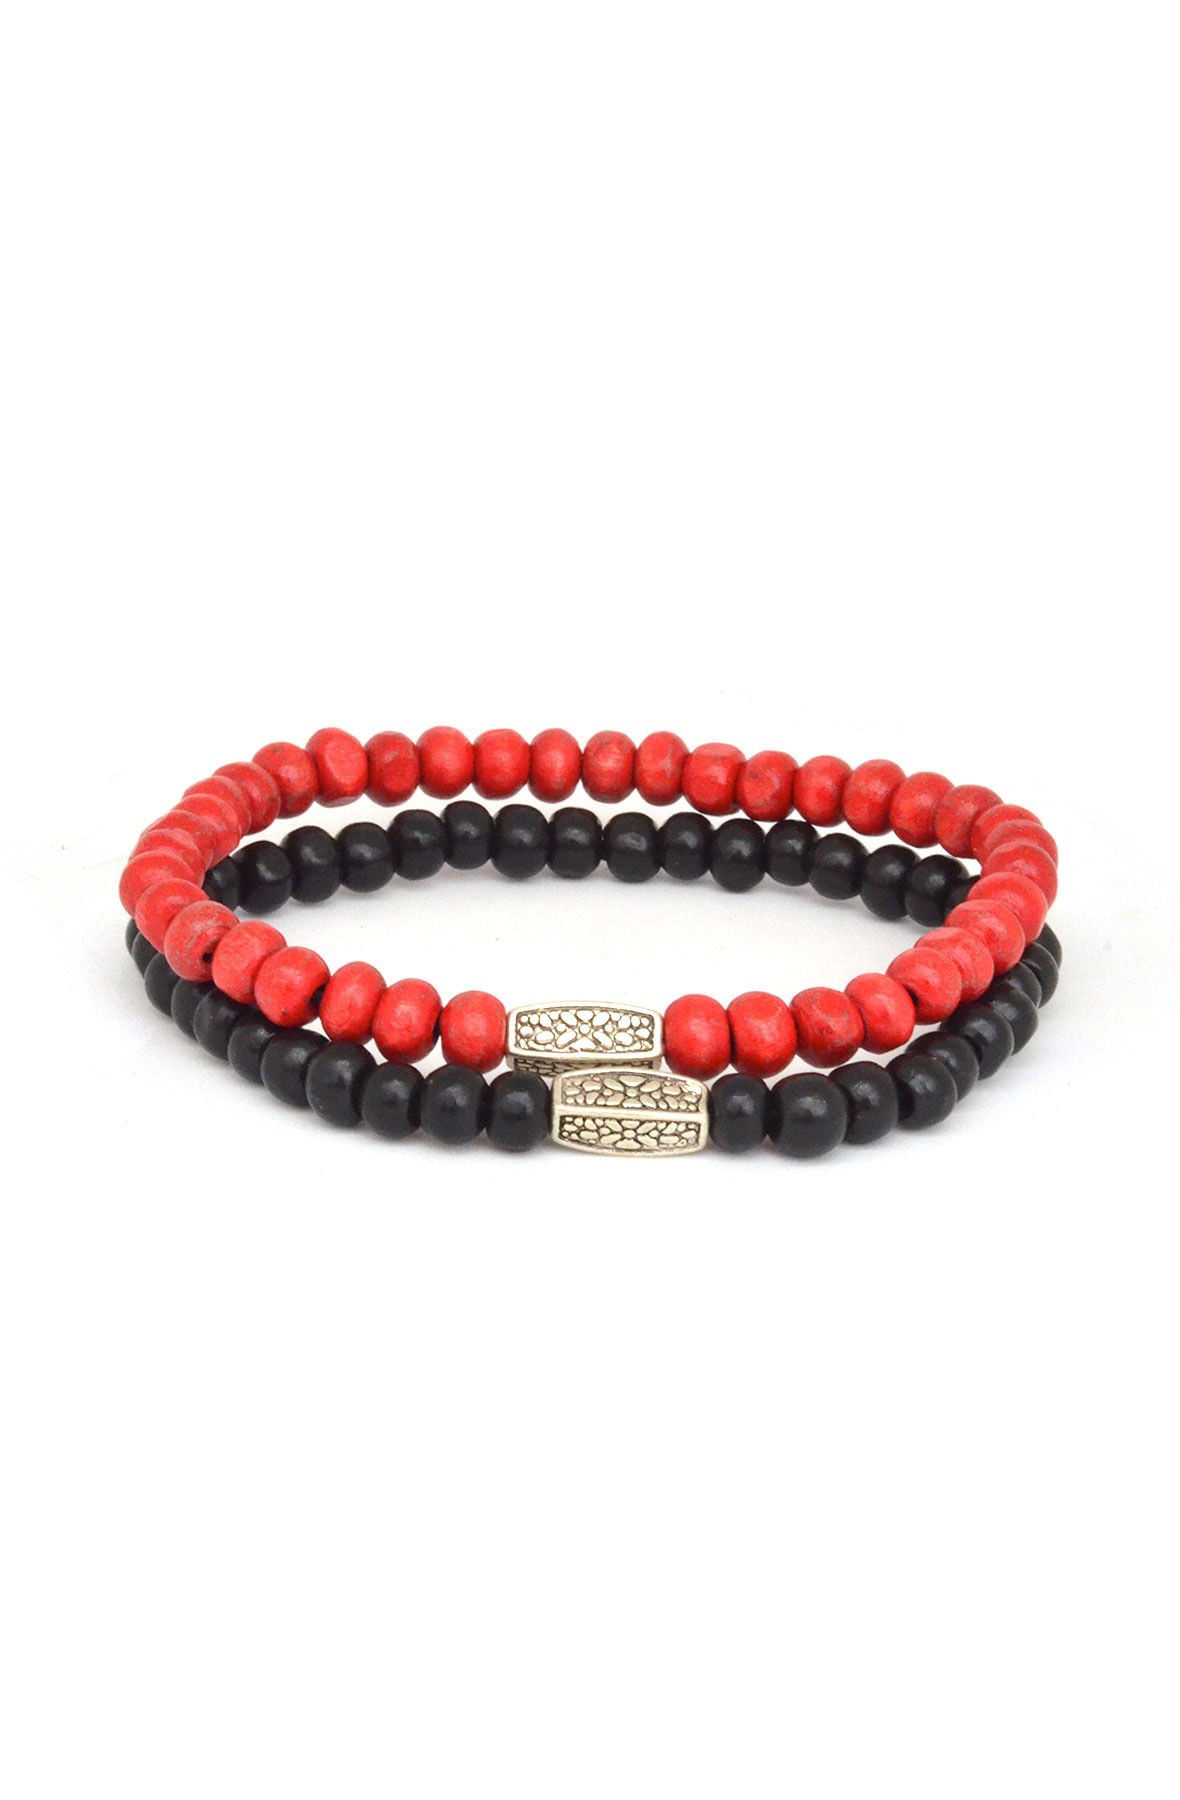 2 Pack Black and Red Mens Bracelet Set